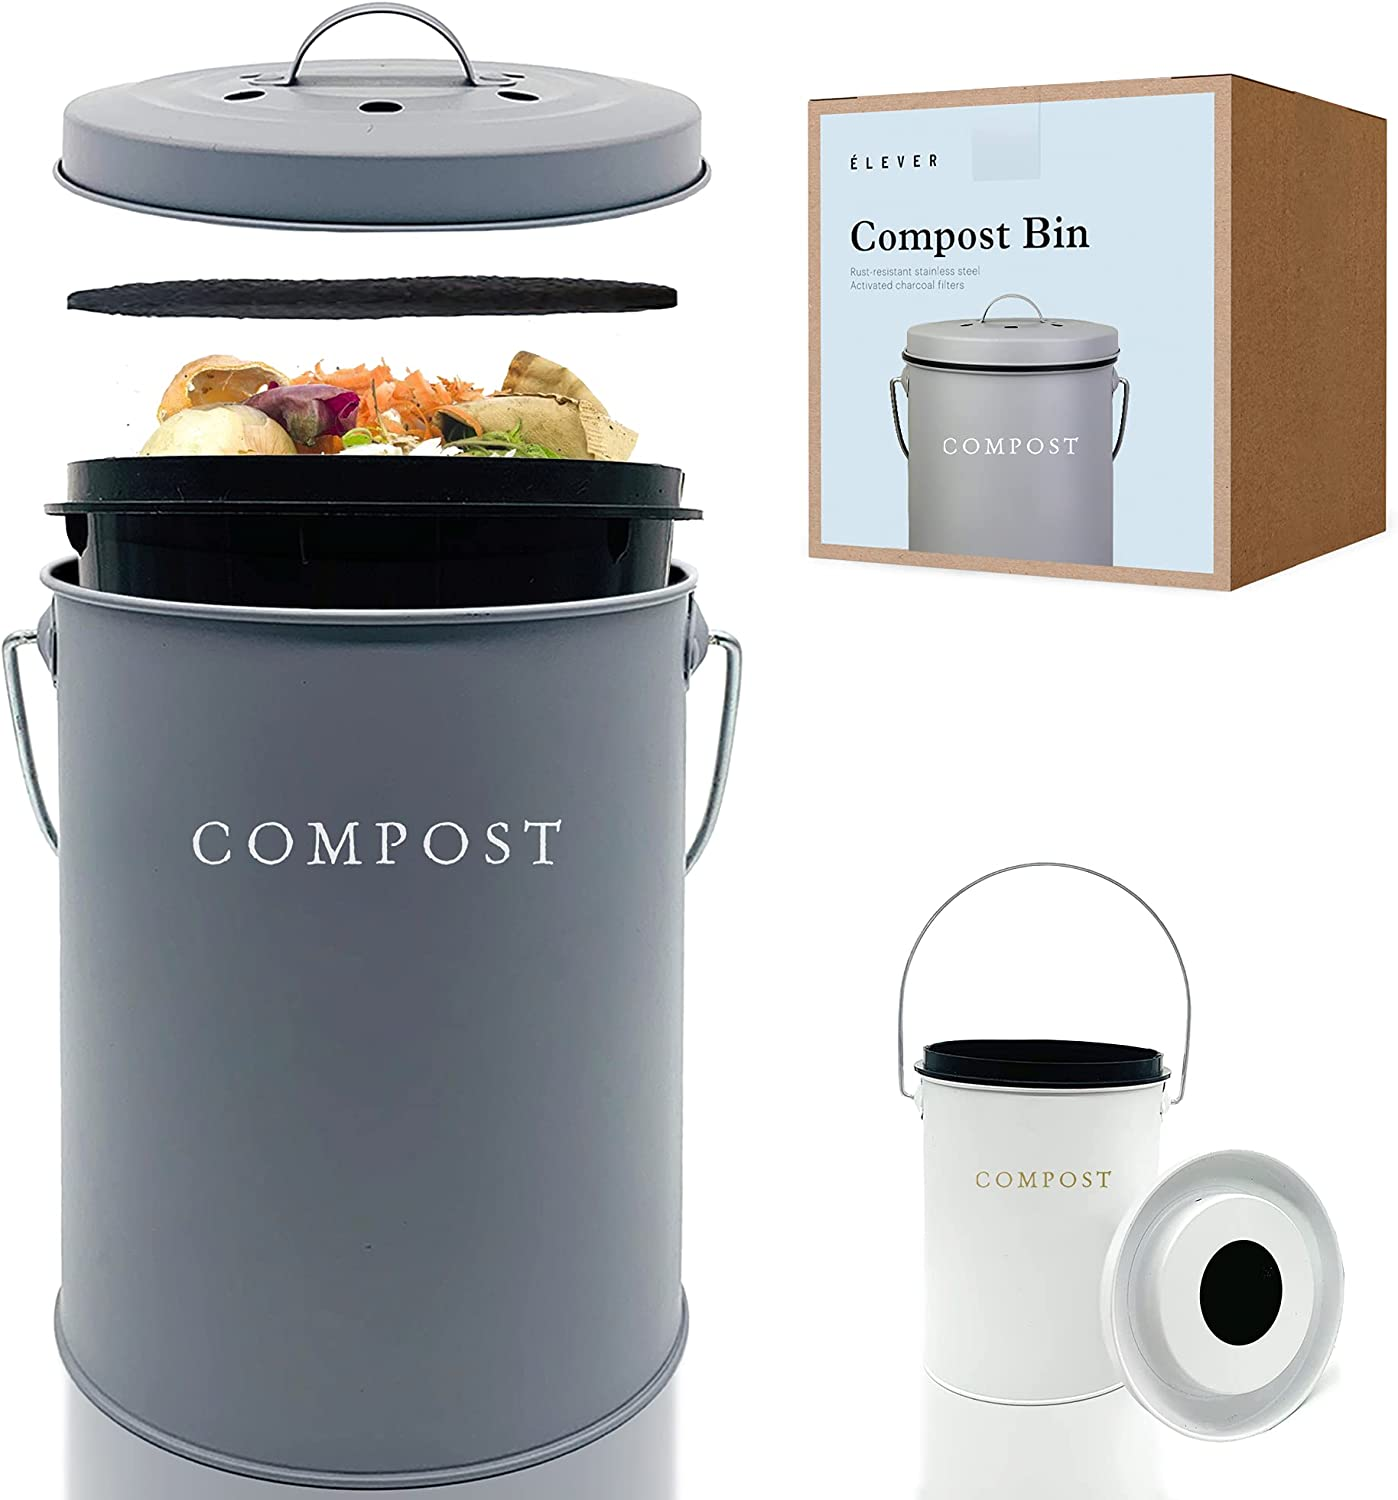 Compost Bin Kitchen Charcoal Filter, Stainless Steel Countertop Compost Bin With Lid for Compost Starter with Inner Compost Bucket for Kitchen, Compost Tumbler Zero Waste Recycling Kitchen Compost Bin